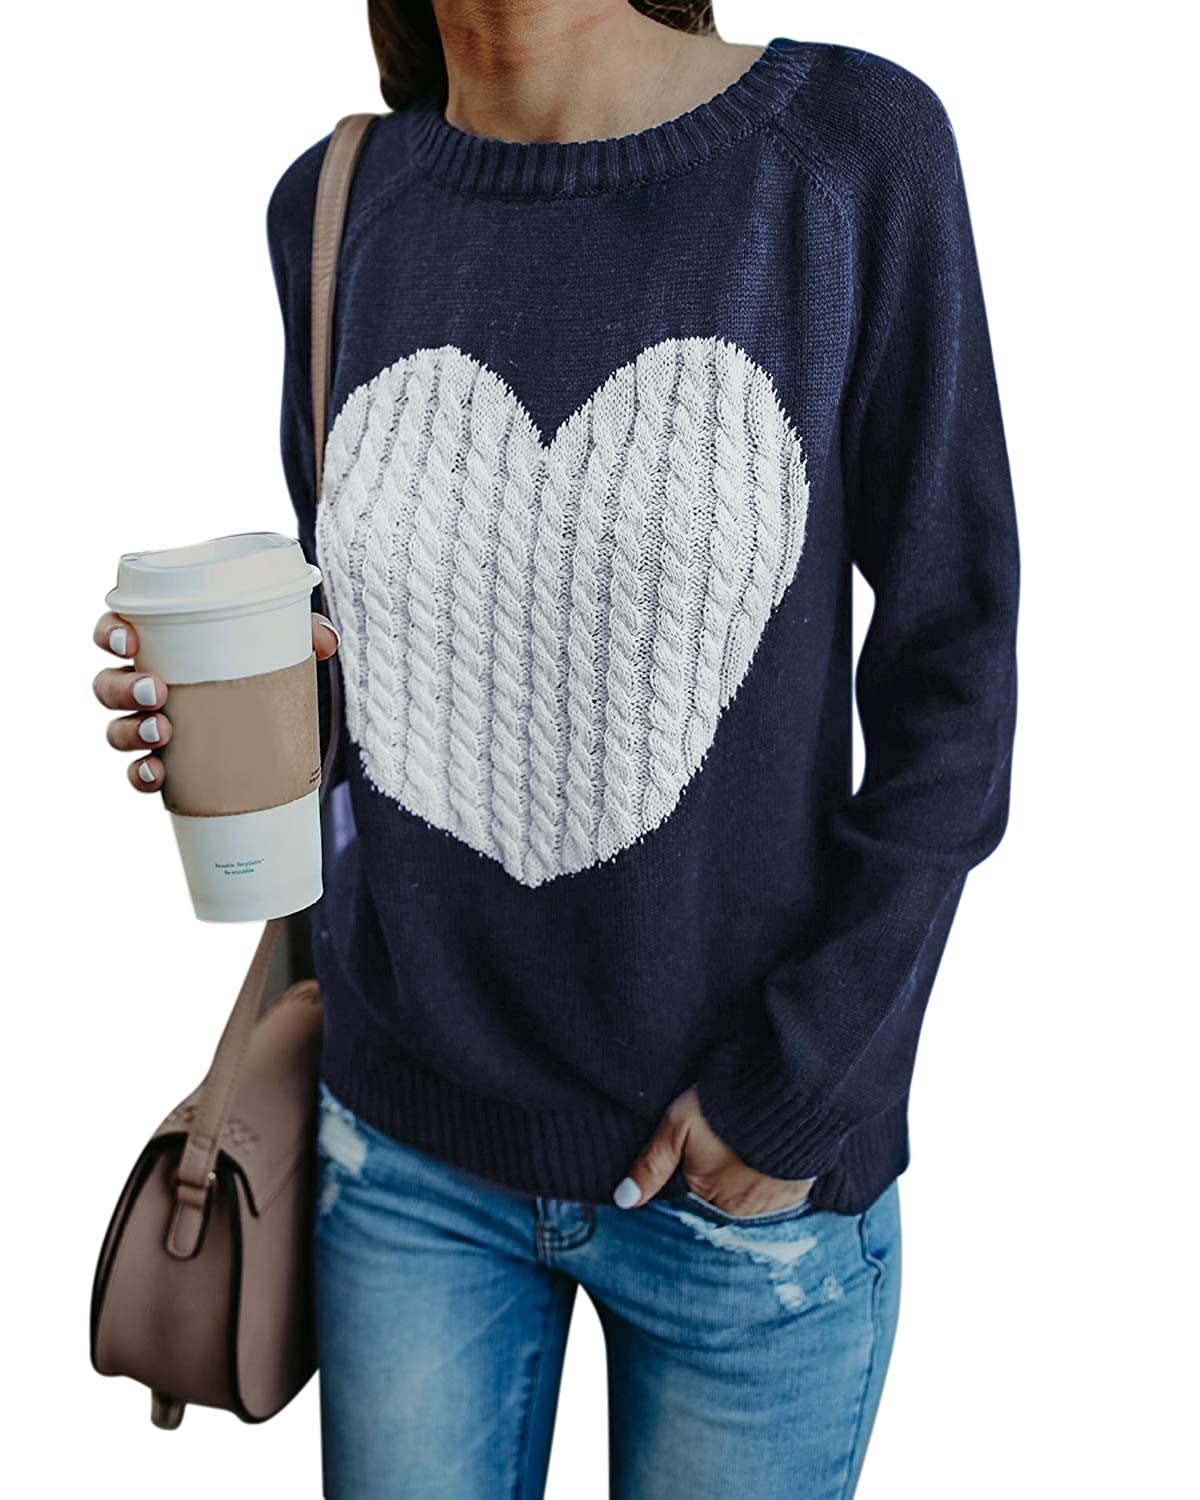 BBYES Womens Crewneck Long Sleeve Knit Sweater Pullover Top Heart Pattern BBYES-FB0000274@639